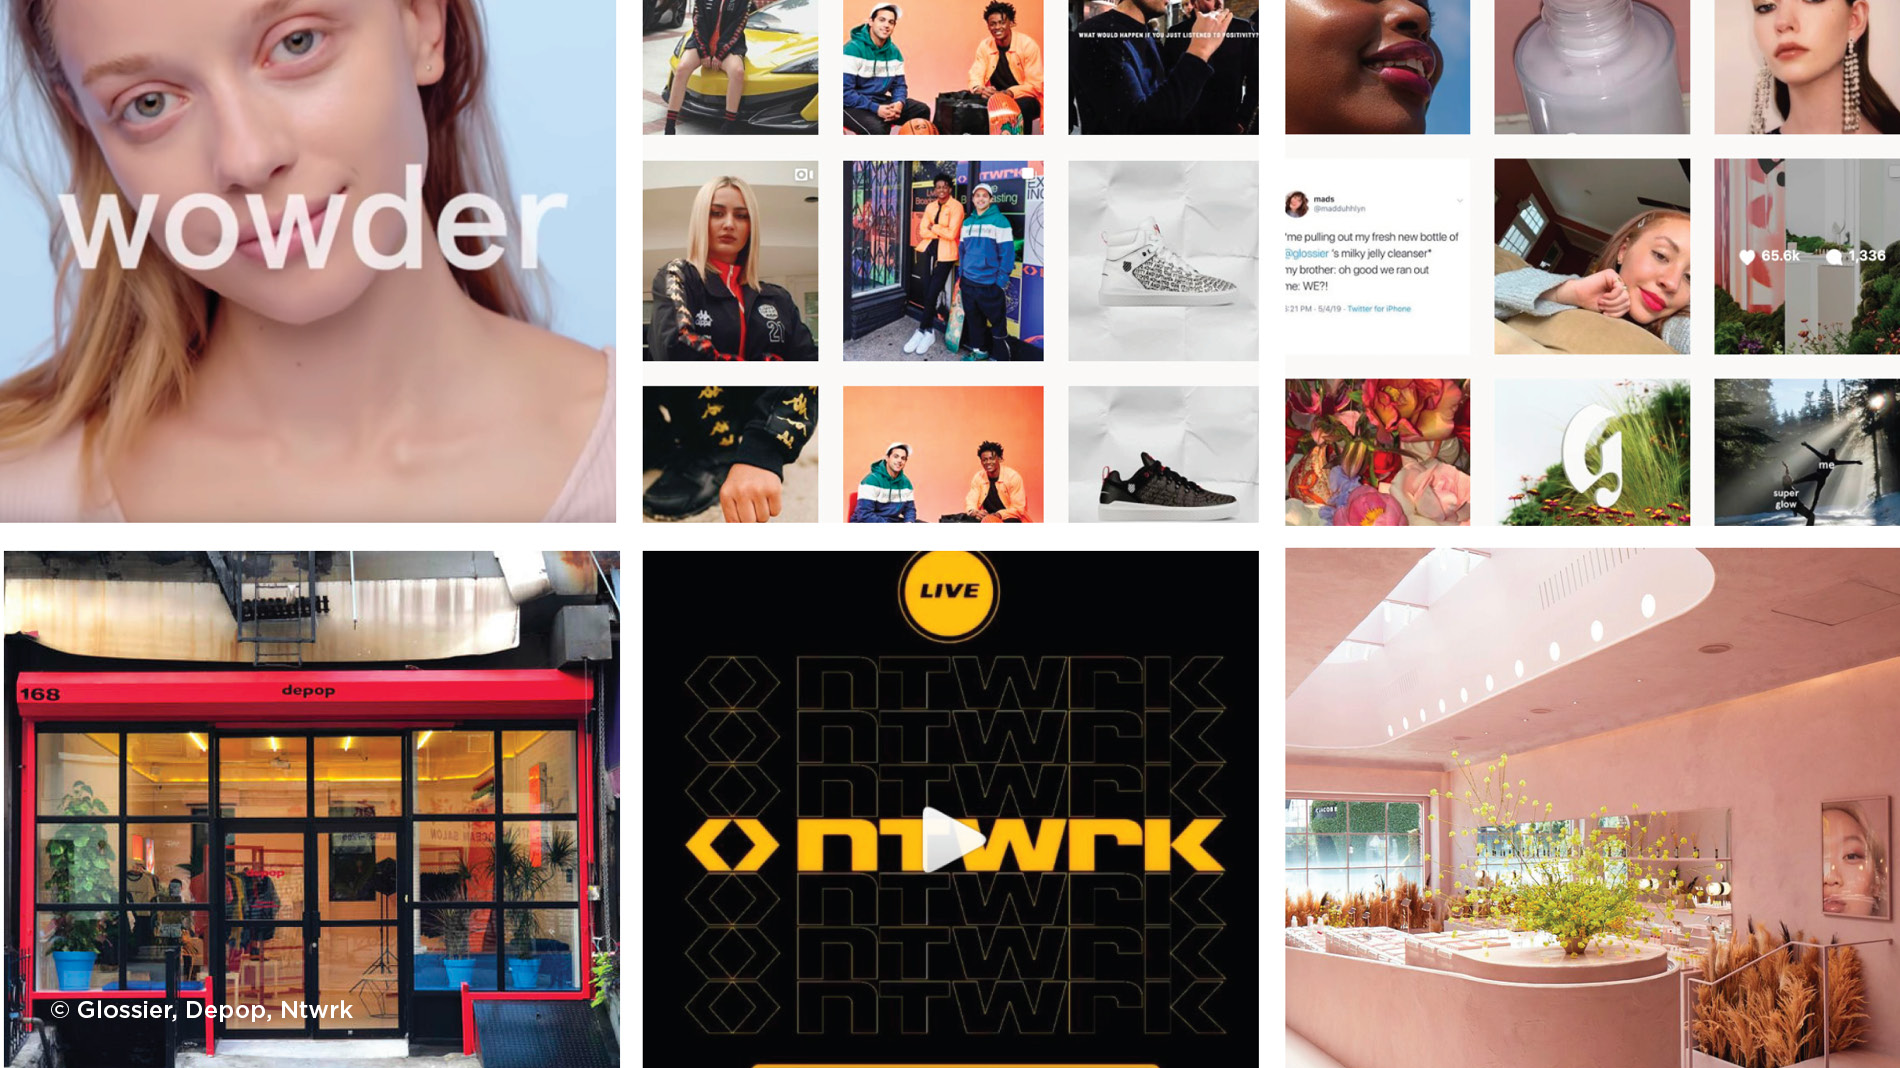 New age of retail disruption examples by glossier, depop and ntwrk